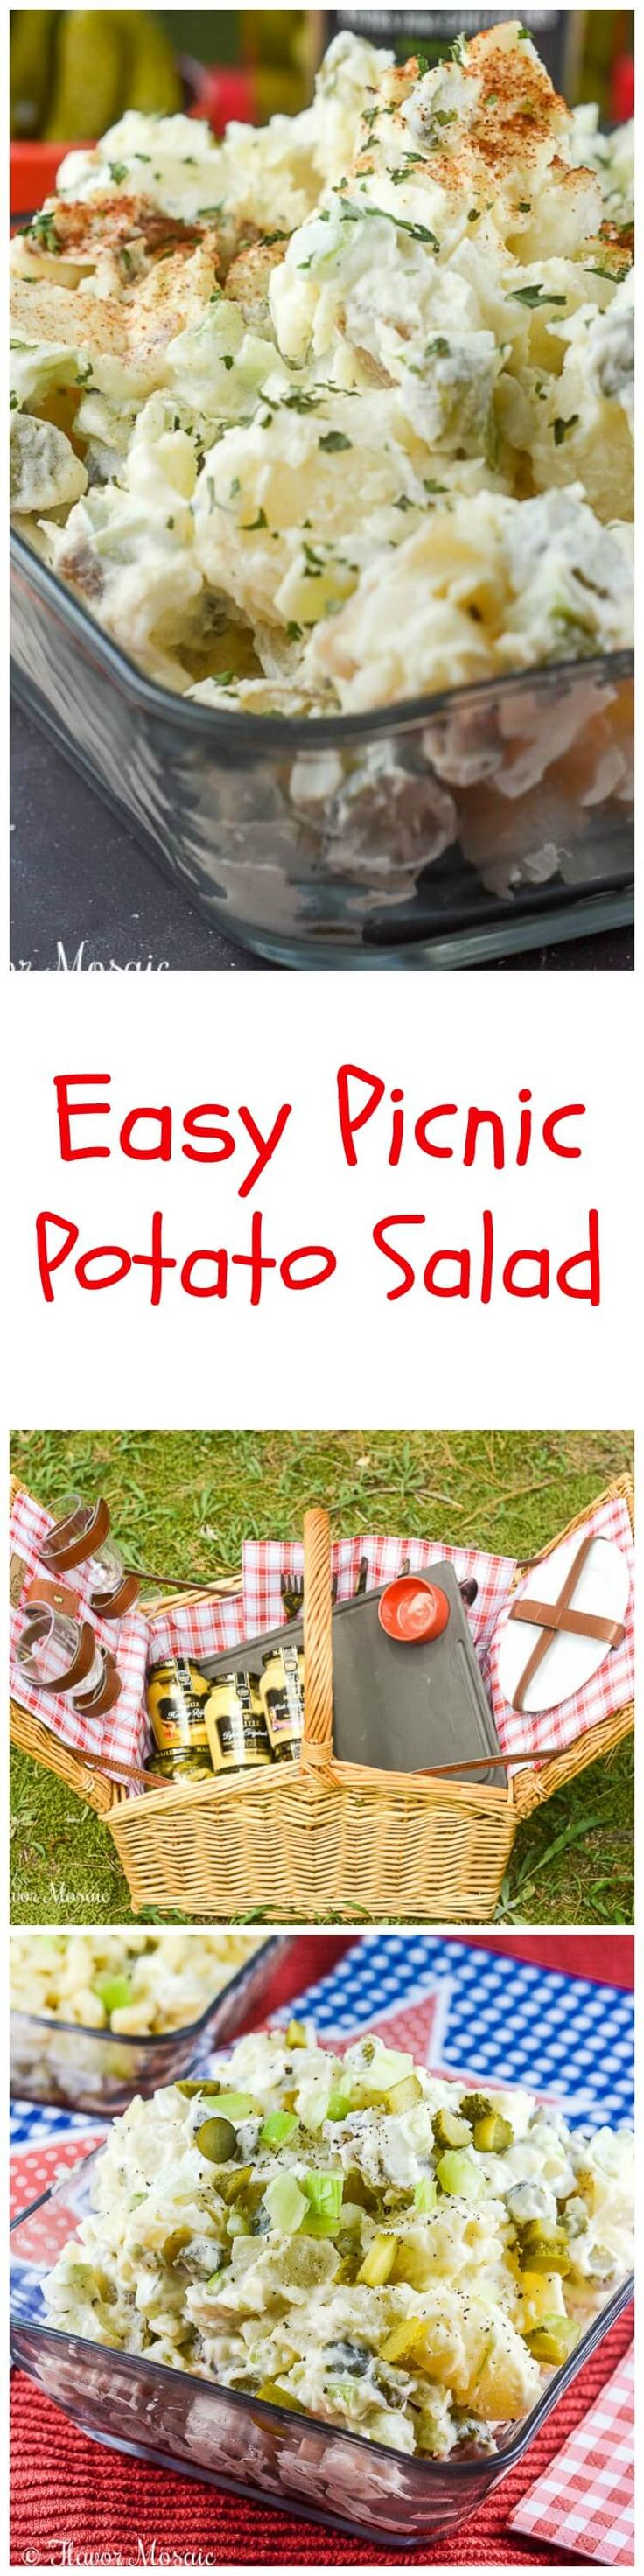 potato salad americans 2 essay Learn how to make all-american potato salad myrecipes has 70,000+ tested recipes and videos to help you be a better cook.